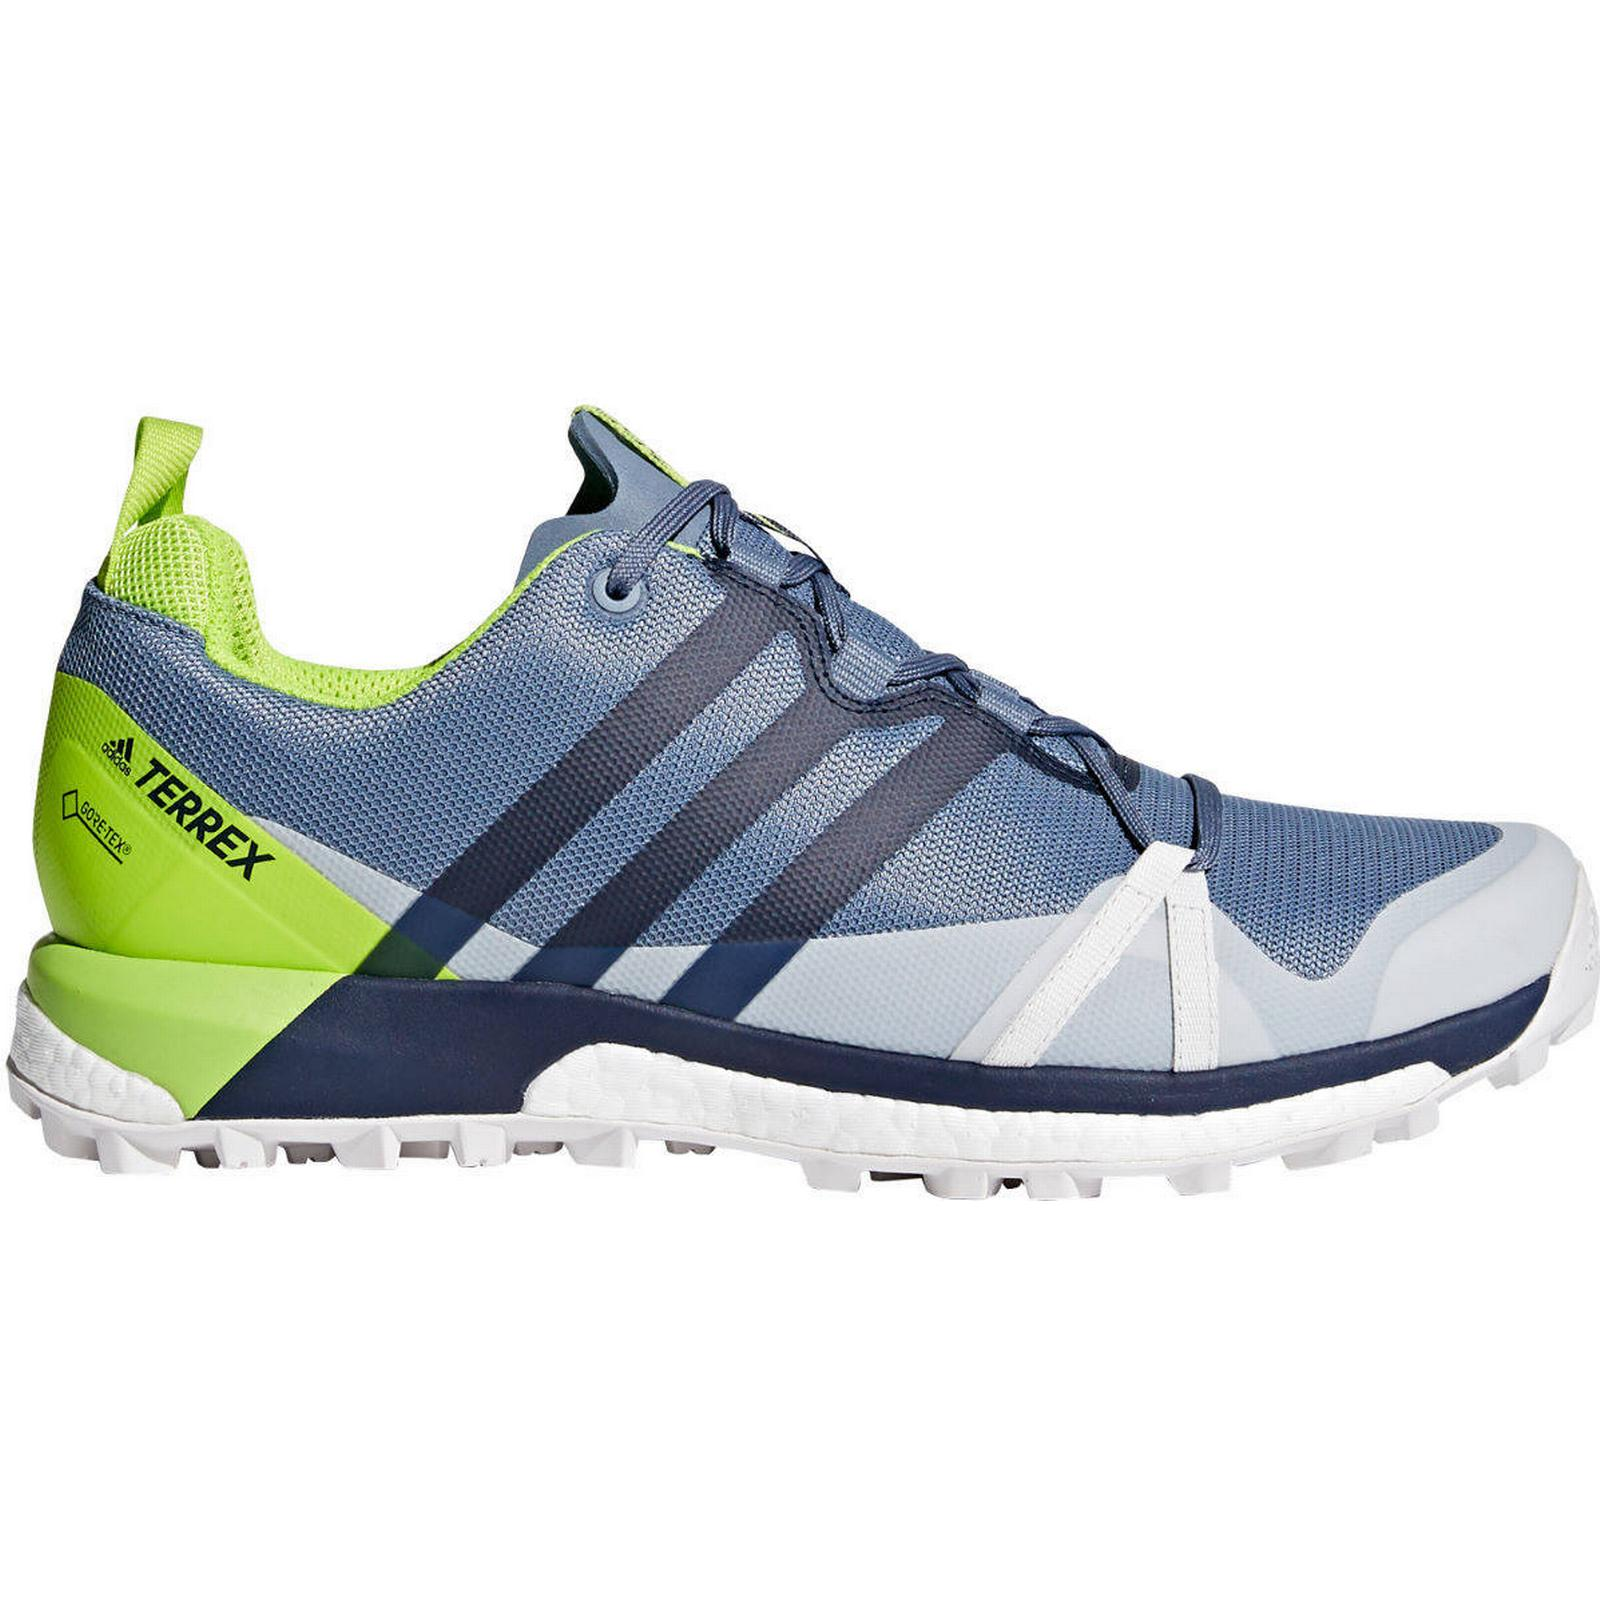 Wiggle Online Cycle Shop GTX adidas Terrex Agravic GTX Shop Shoes 2d878c